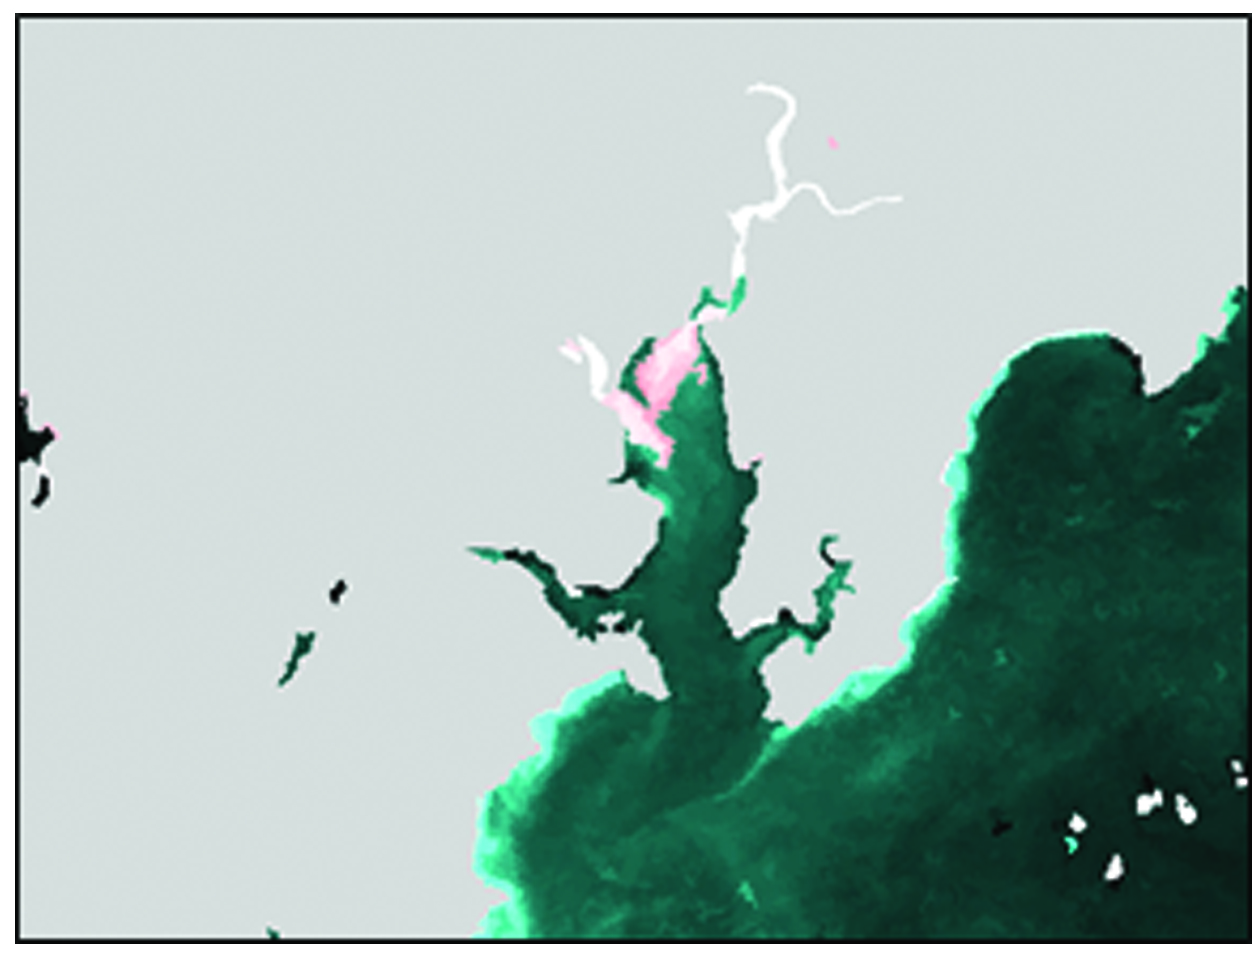 River plume extent determined using Landsat 8 data and image classification techniques. Mapped plume extent in red